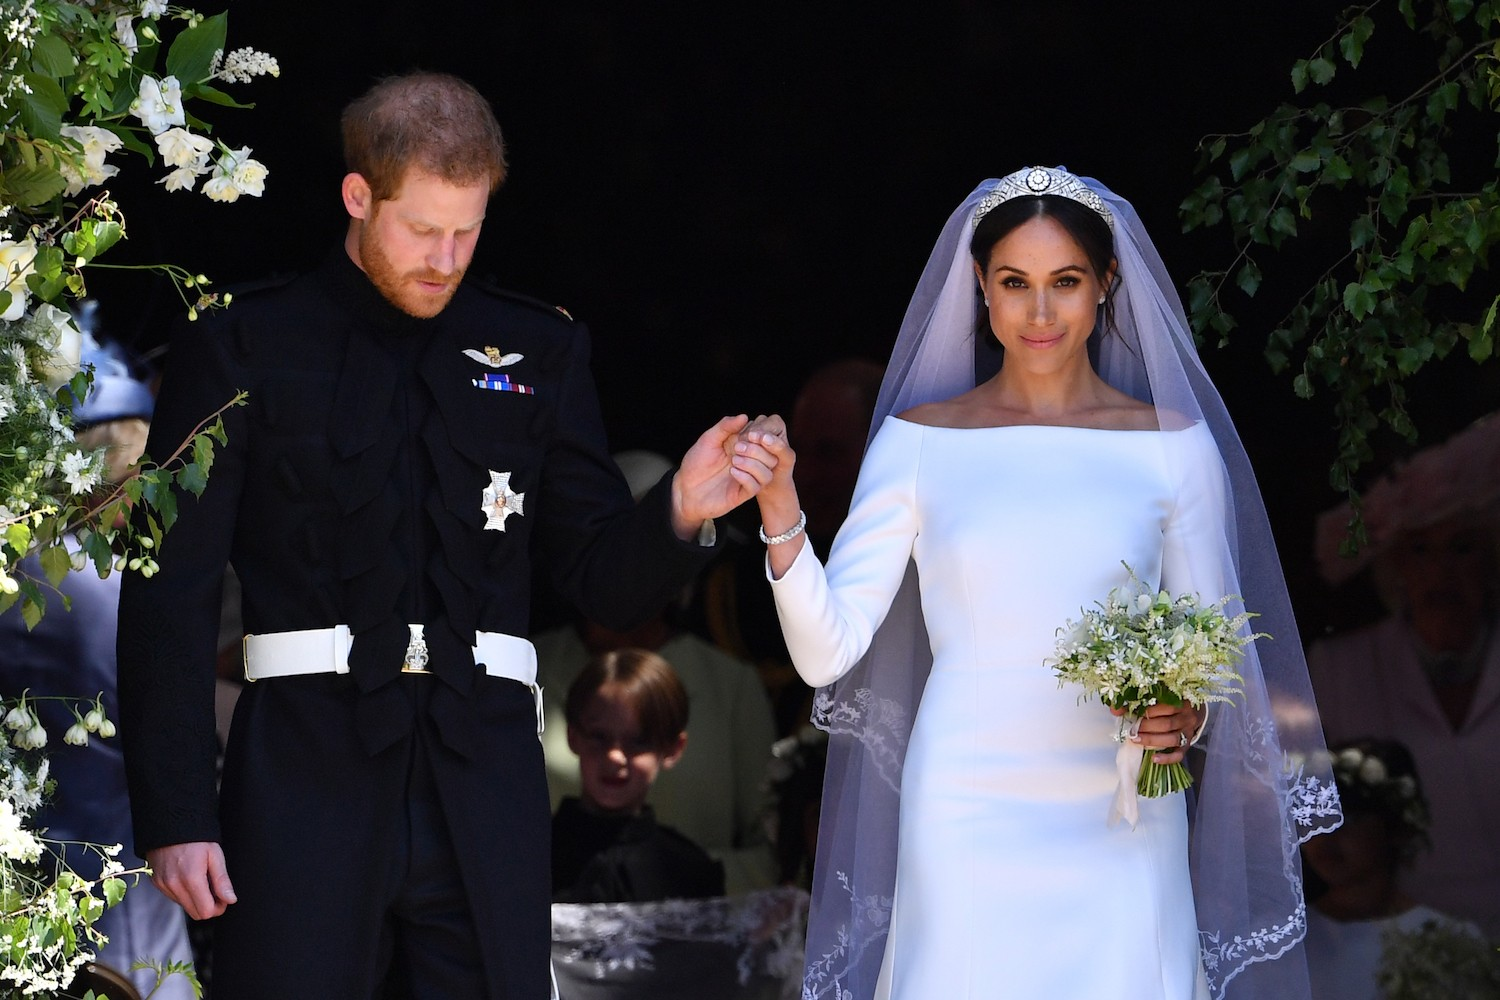 Real Royal Weddings: Prince Harry And Meghan Markle's Wedding After-Party